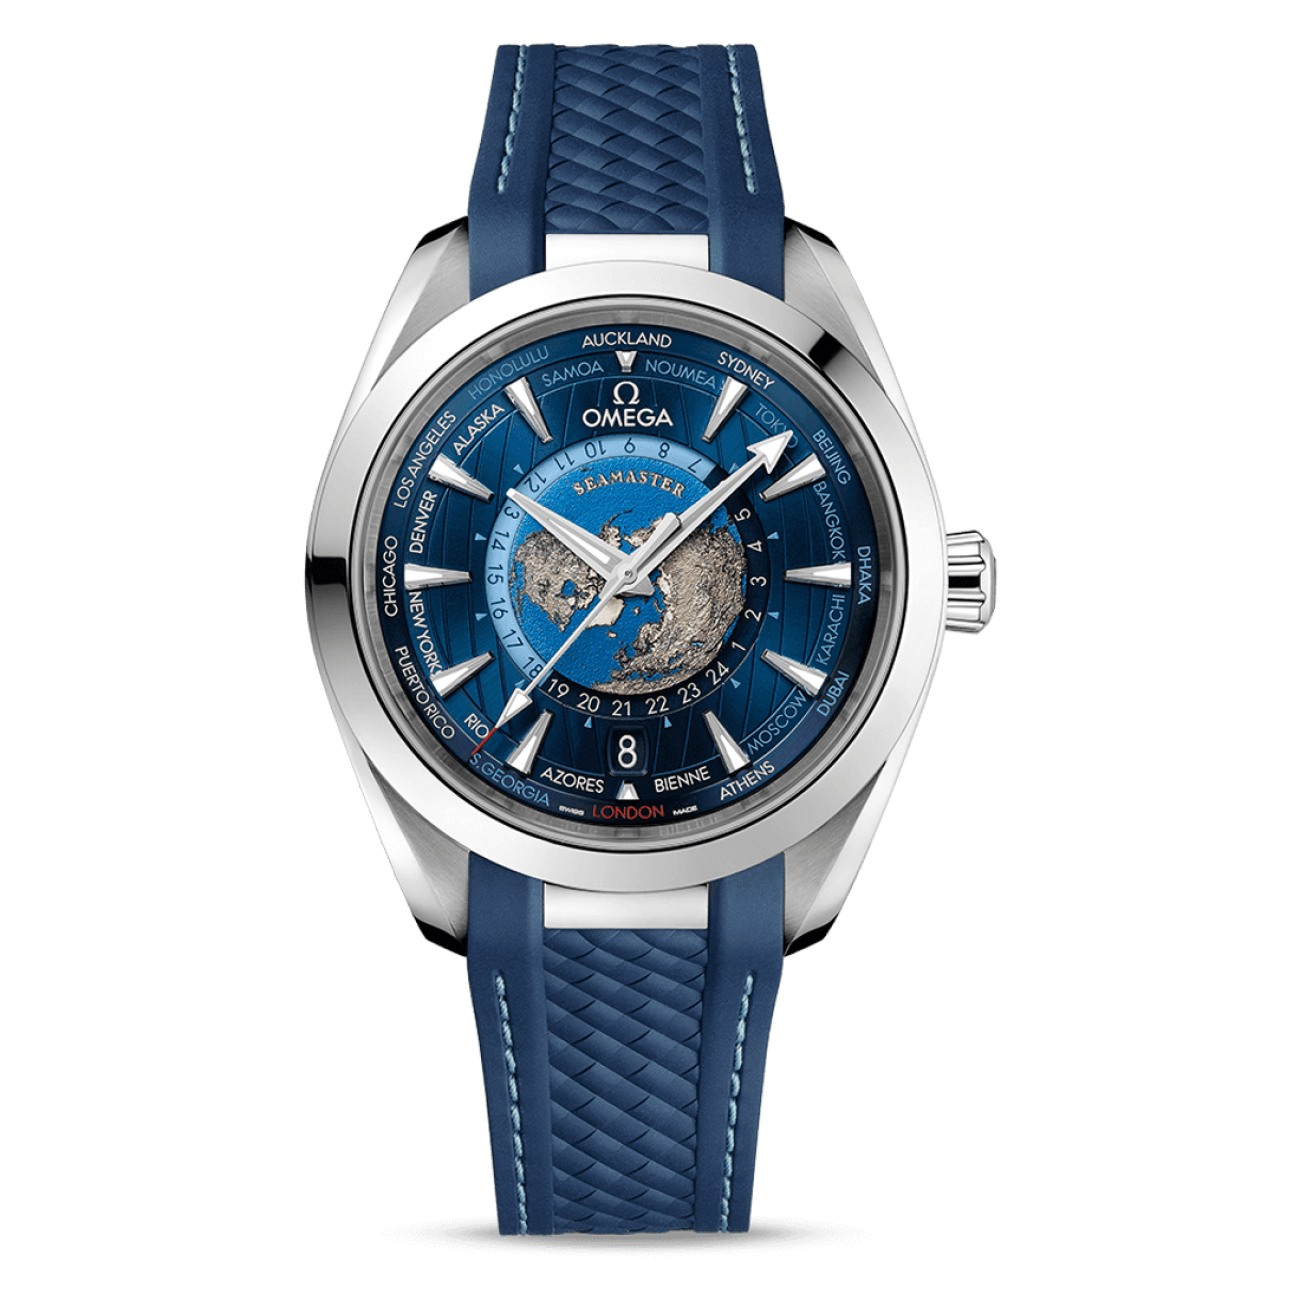 Omega Watches - Seamaster AQUA TERRA 150M OMEGA CO‑AXIAL MASTER CHRONOMETER GMT WORLDTIMER 43 MM Worldtimer | Manfredi Jewels